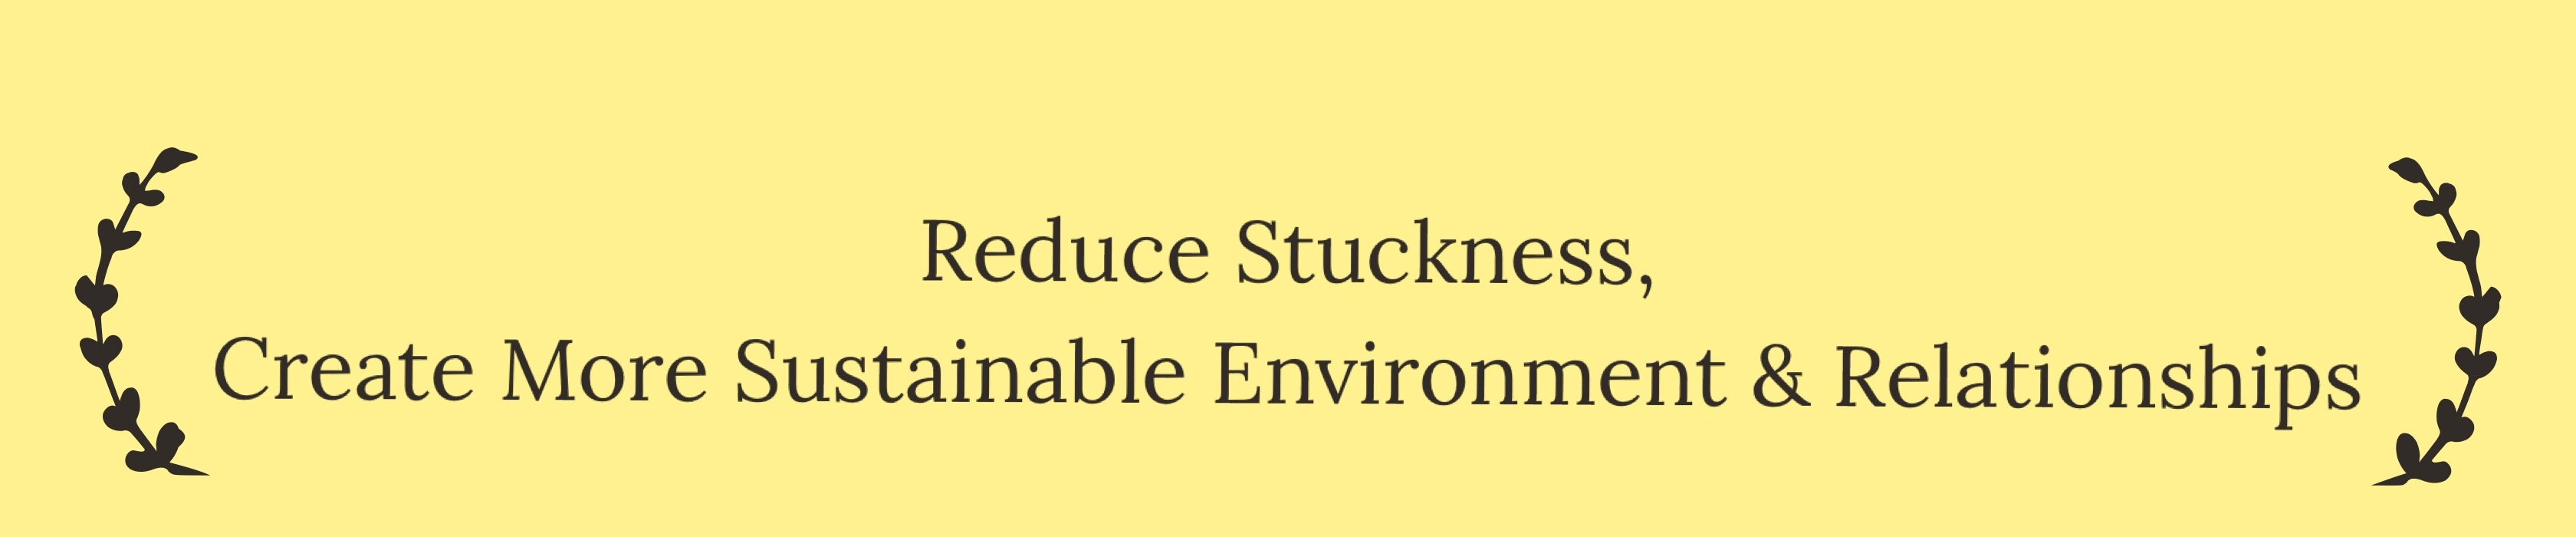 Reduce Stuckness, Create More Sustainable Environment & Relationships.